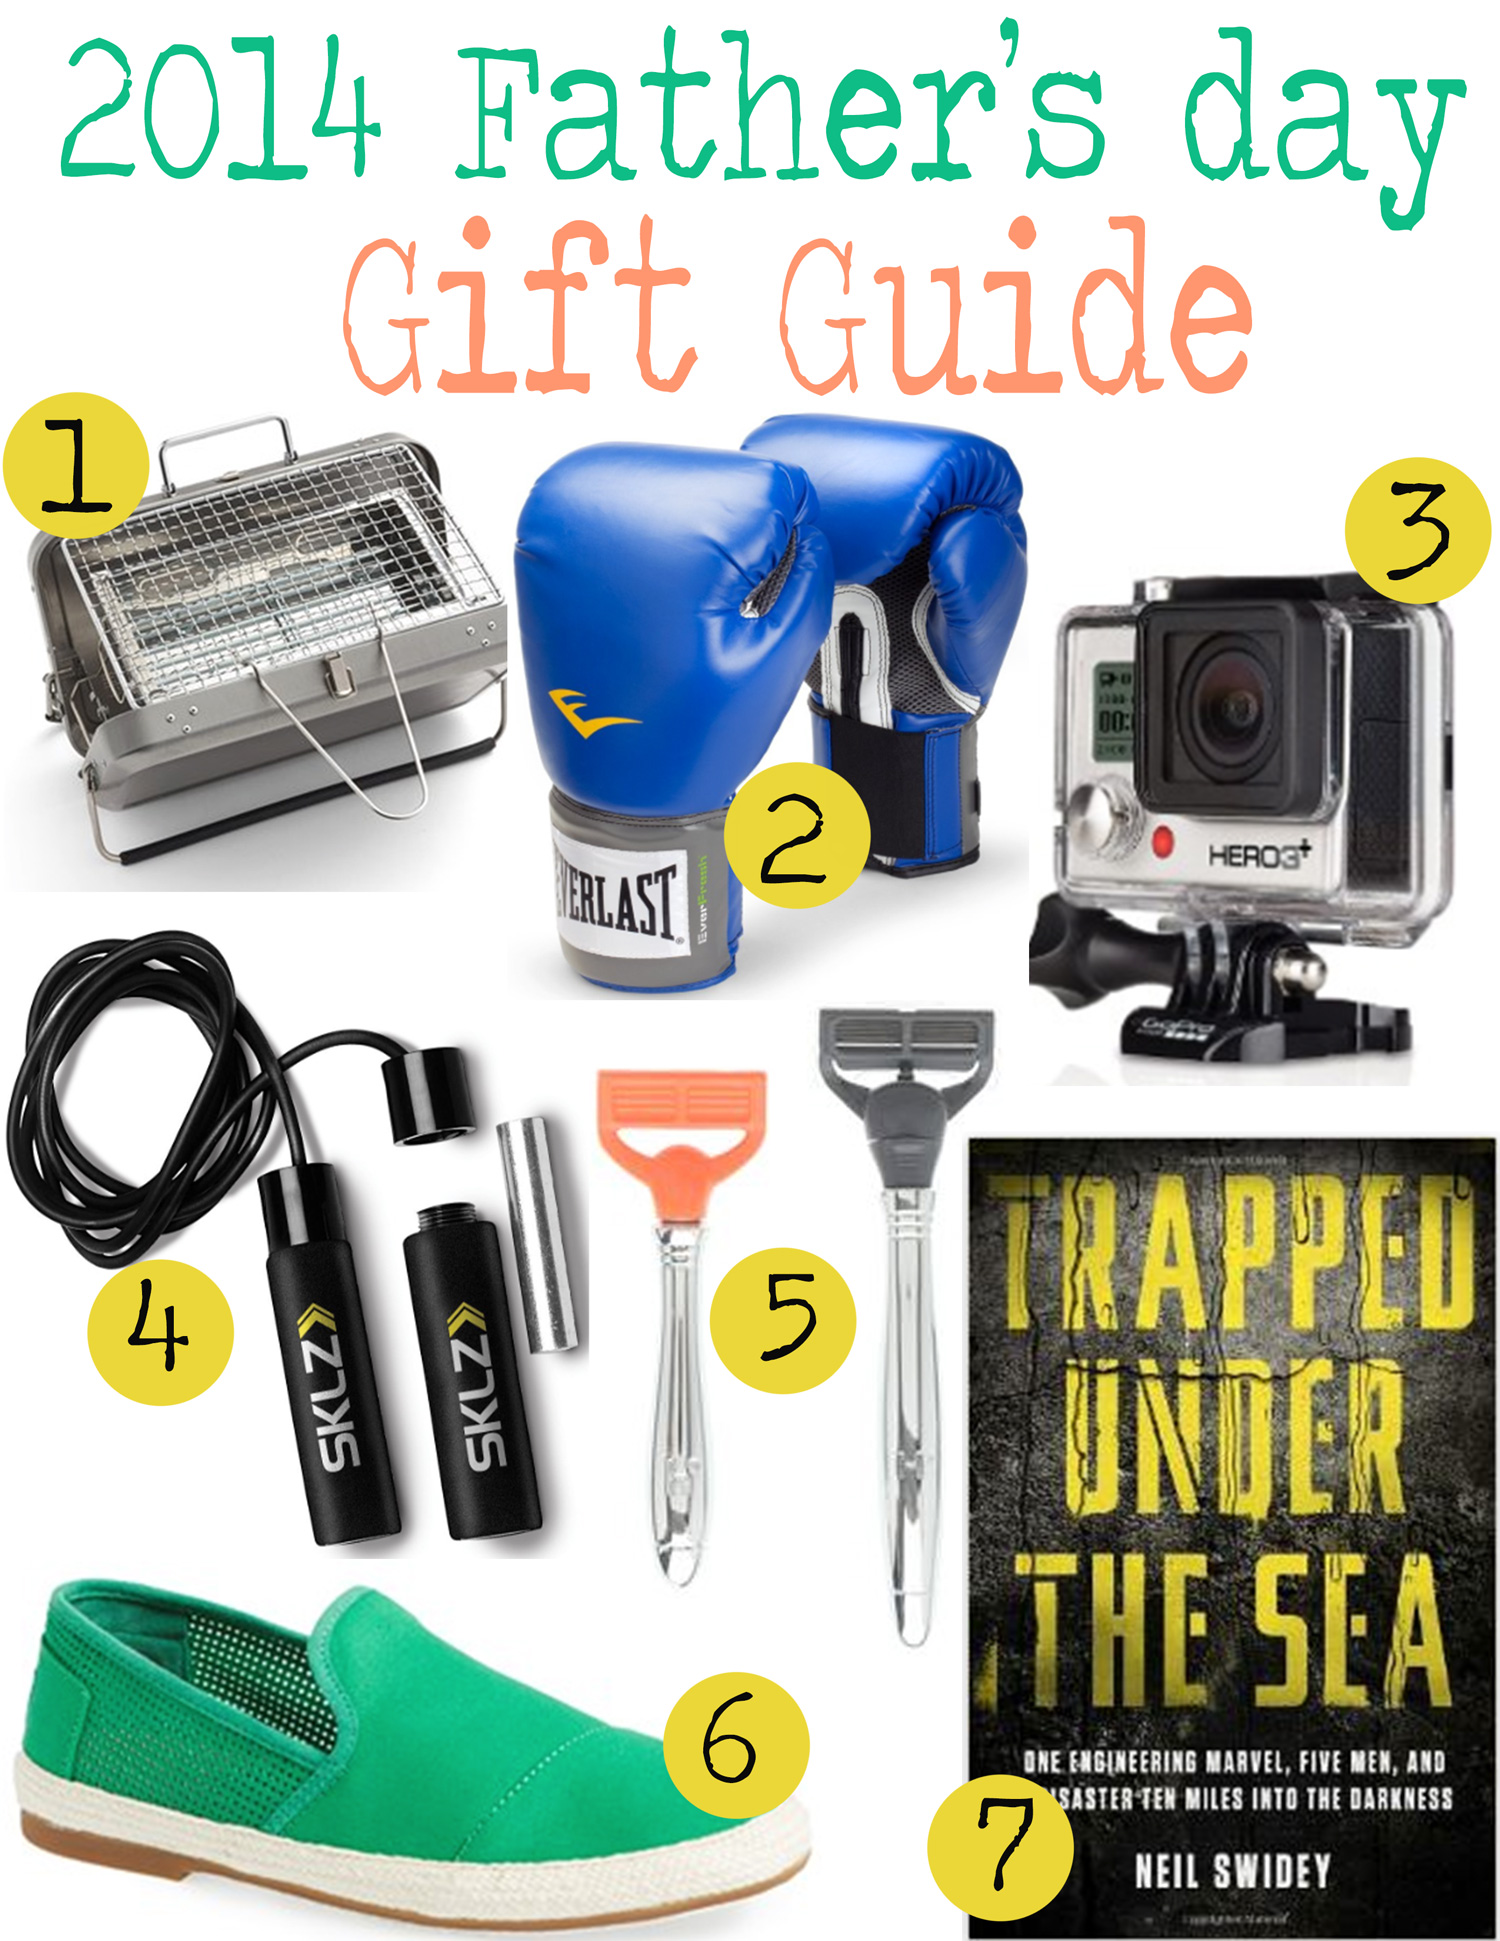 Pin it! 2014 Father's day gift guide